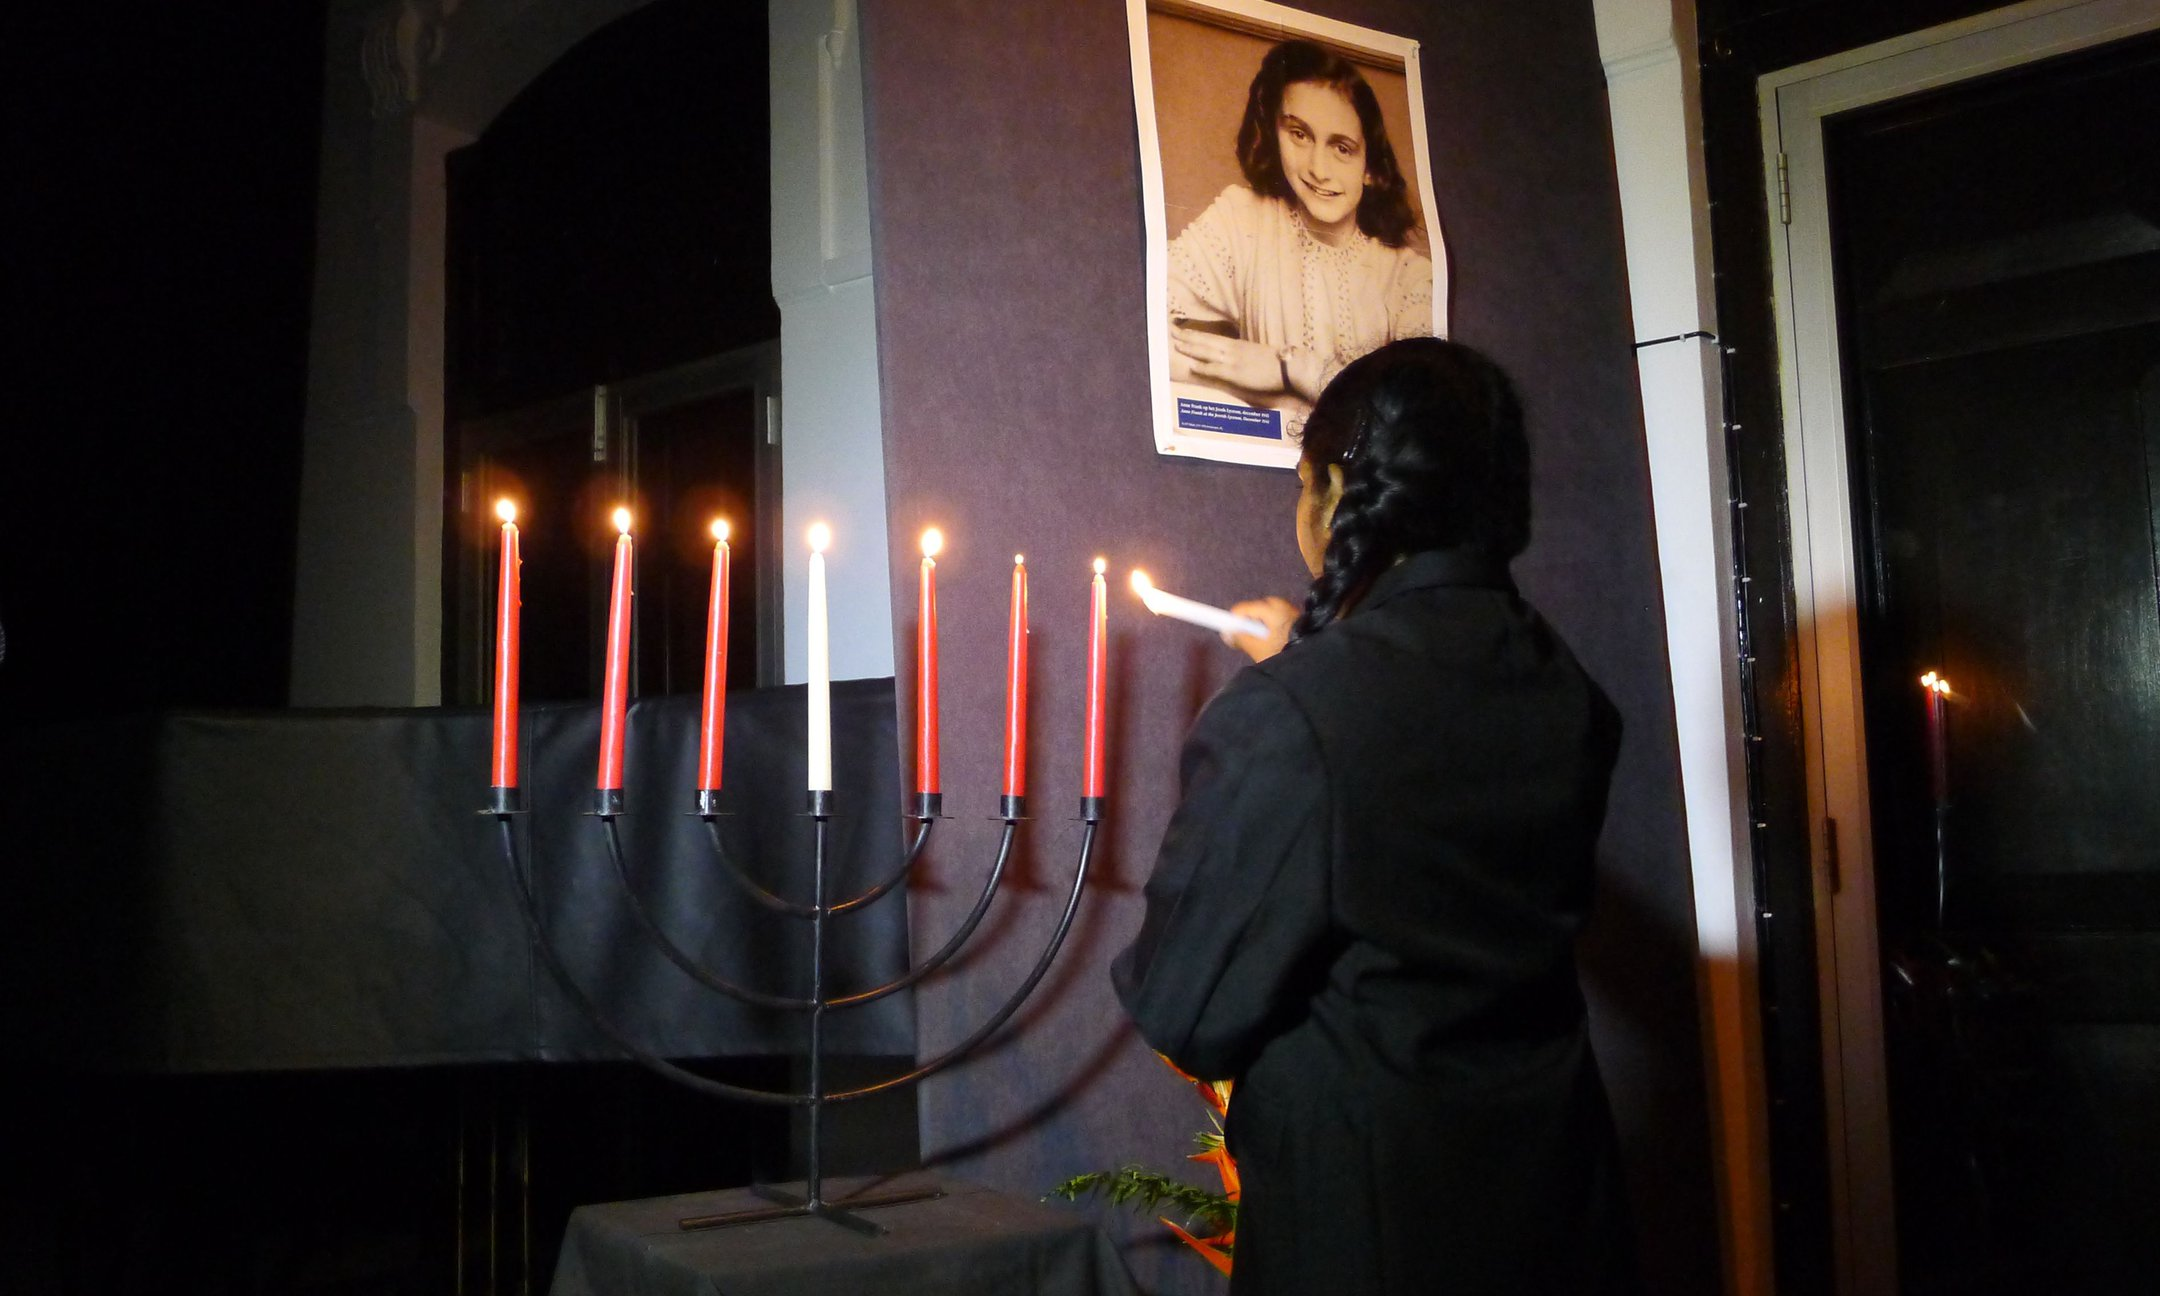 Peer guide lighting the Menorah during the opening ceremony in Colombo (2015)